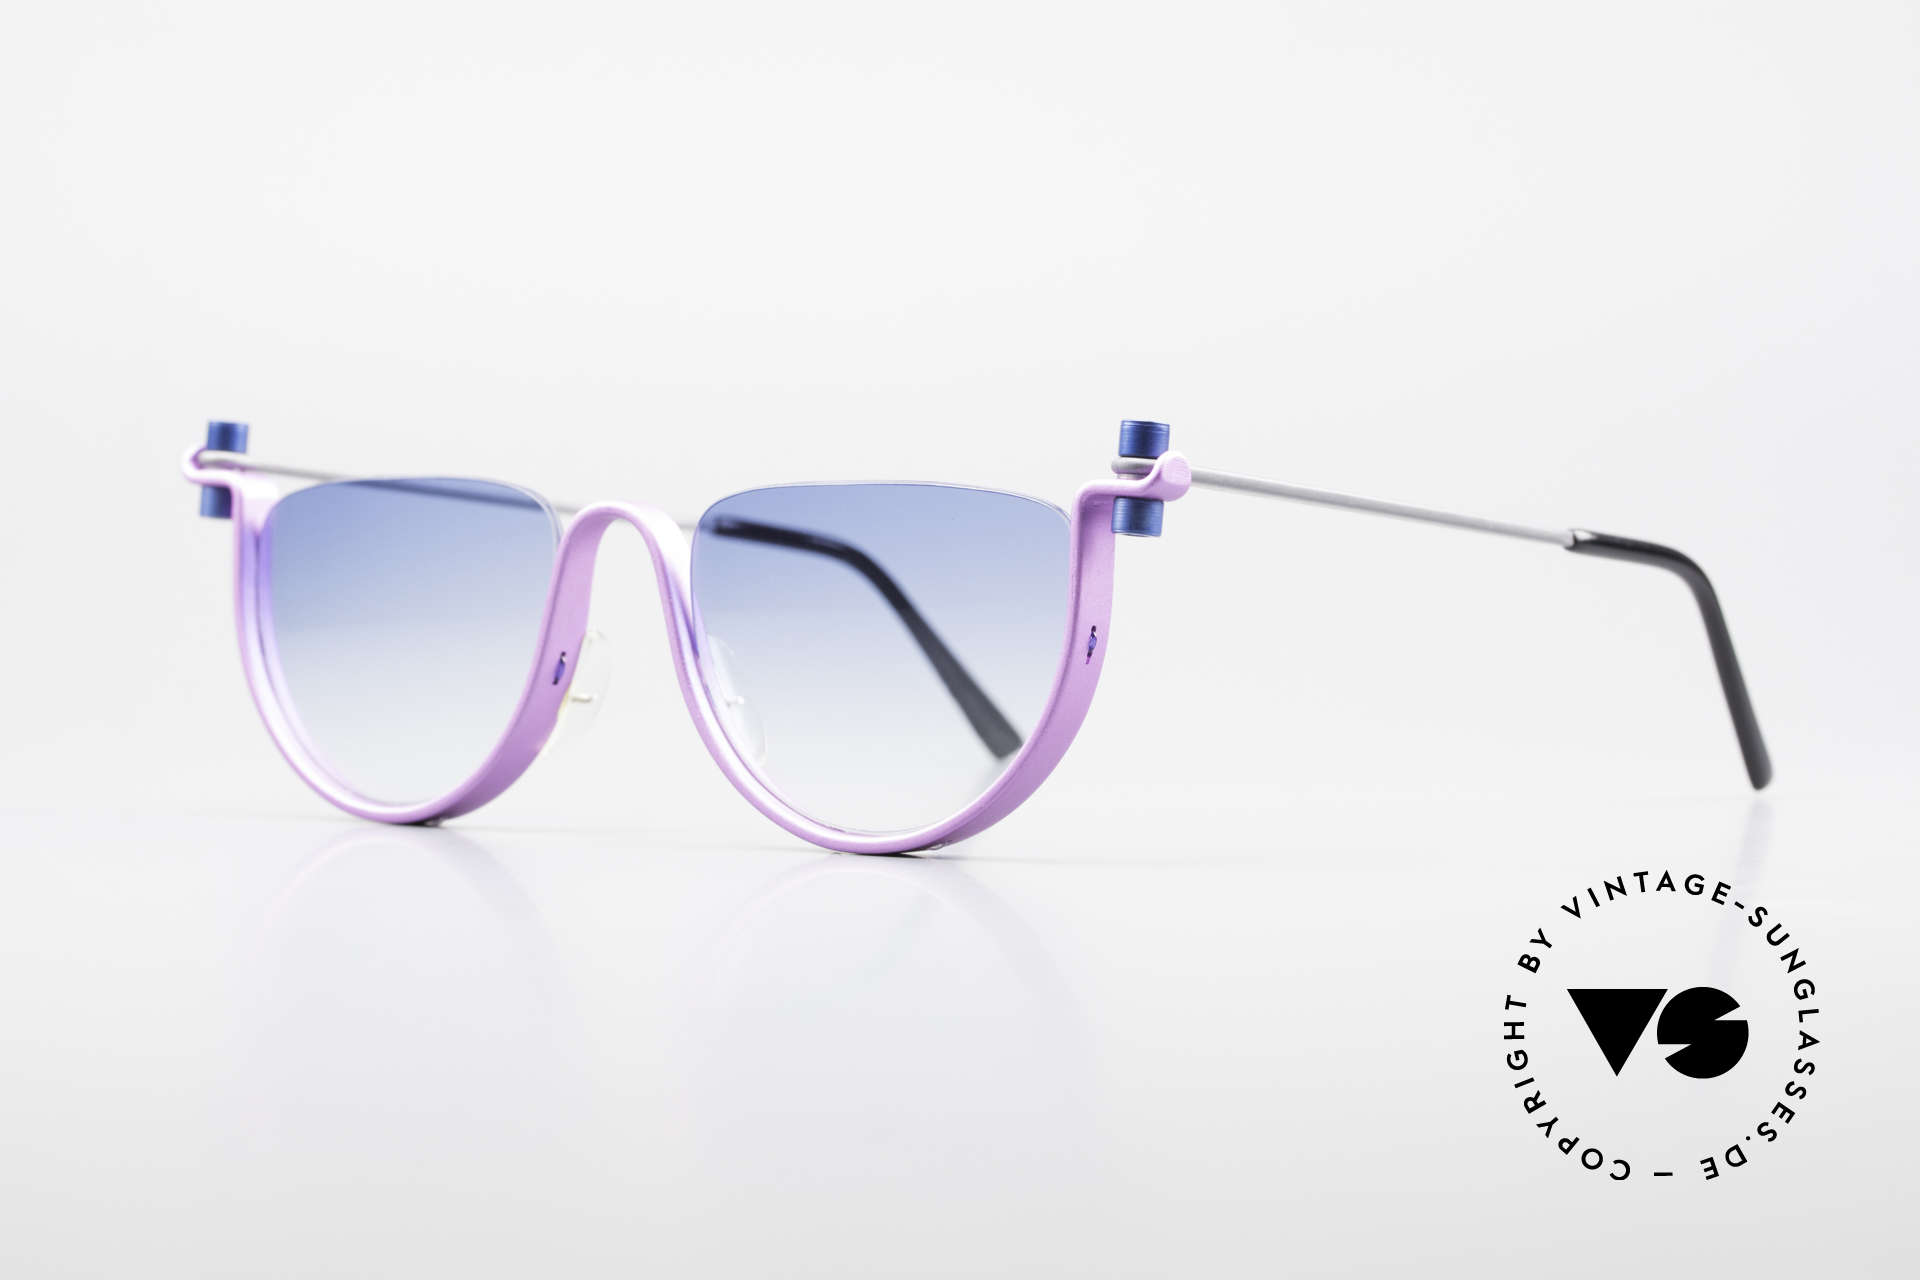 ProDesign No2 Rare Vintage Movie Shades 90's, successor of the legendary Pro Design N° ONE model, Made for Men and Women